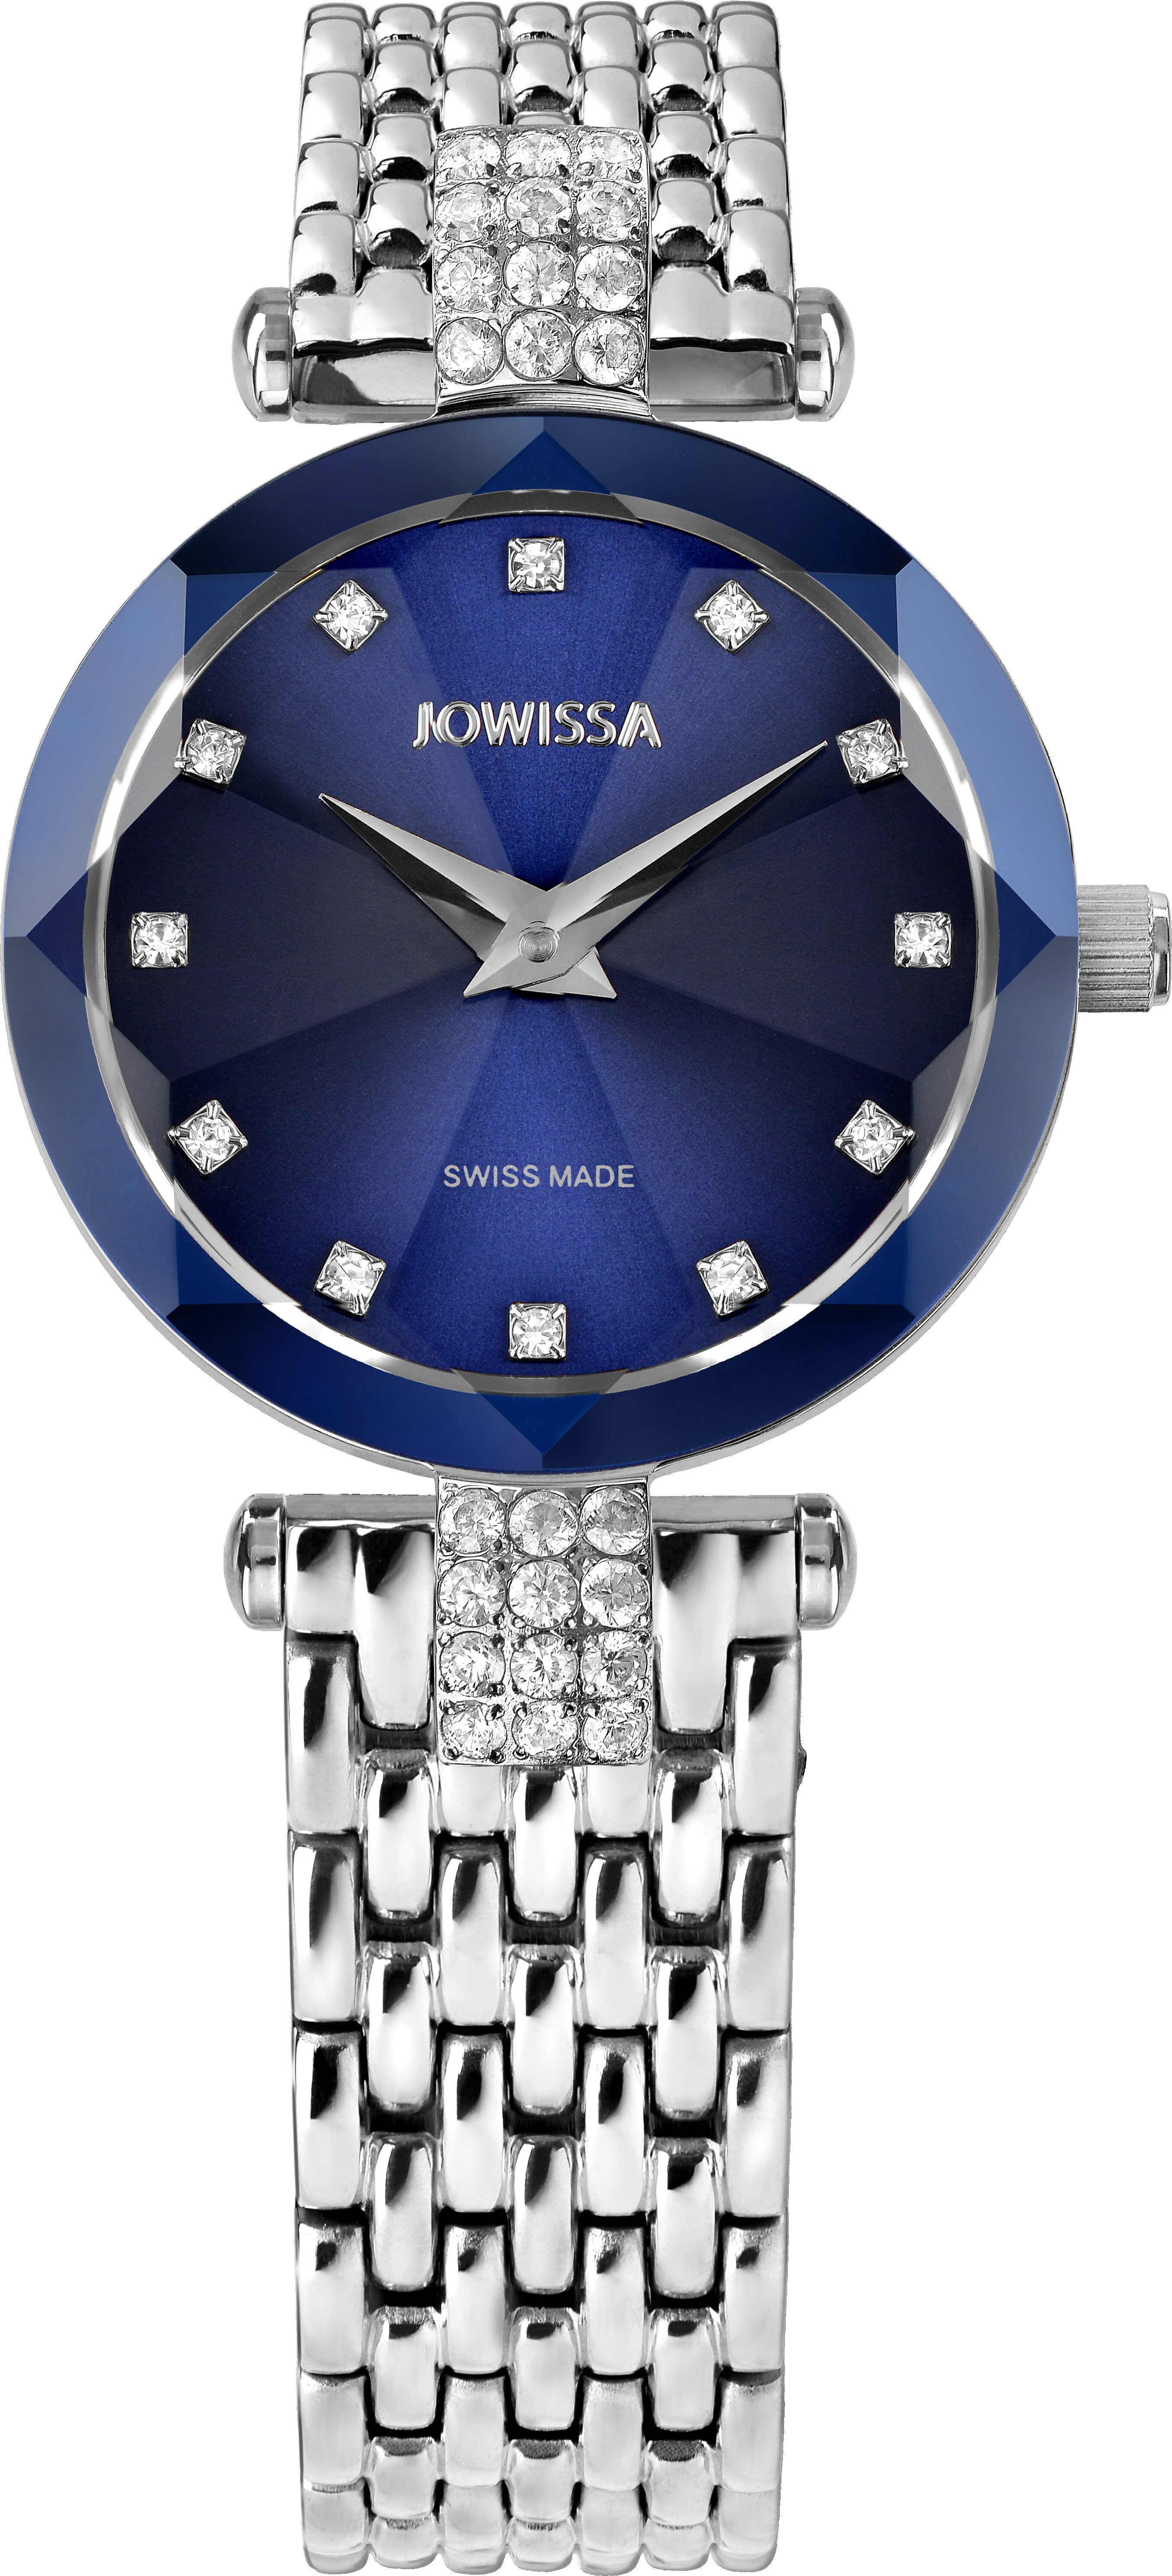 J5.703.S CringView Facet Strass Jowissa Watch.jpg